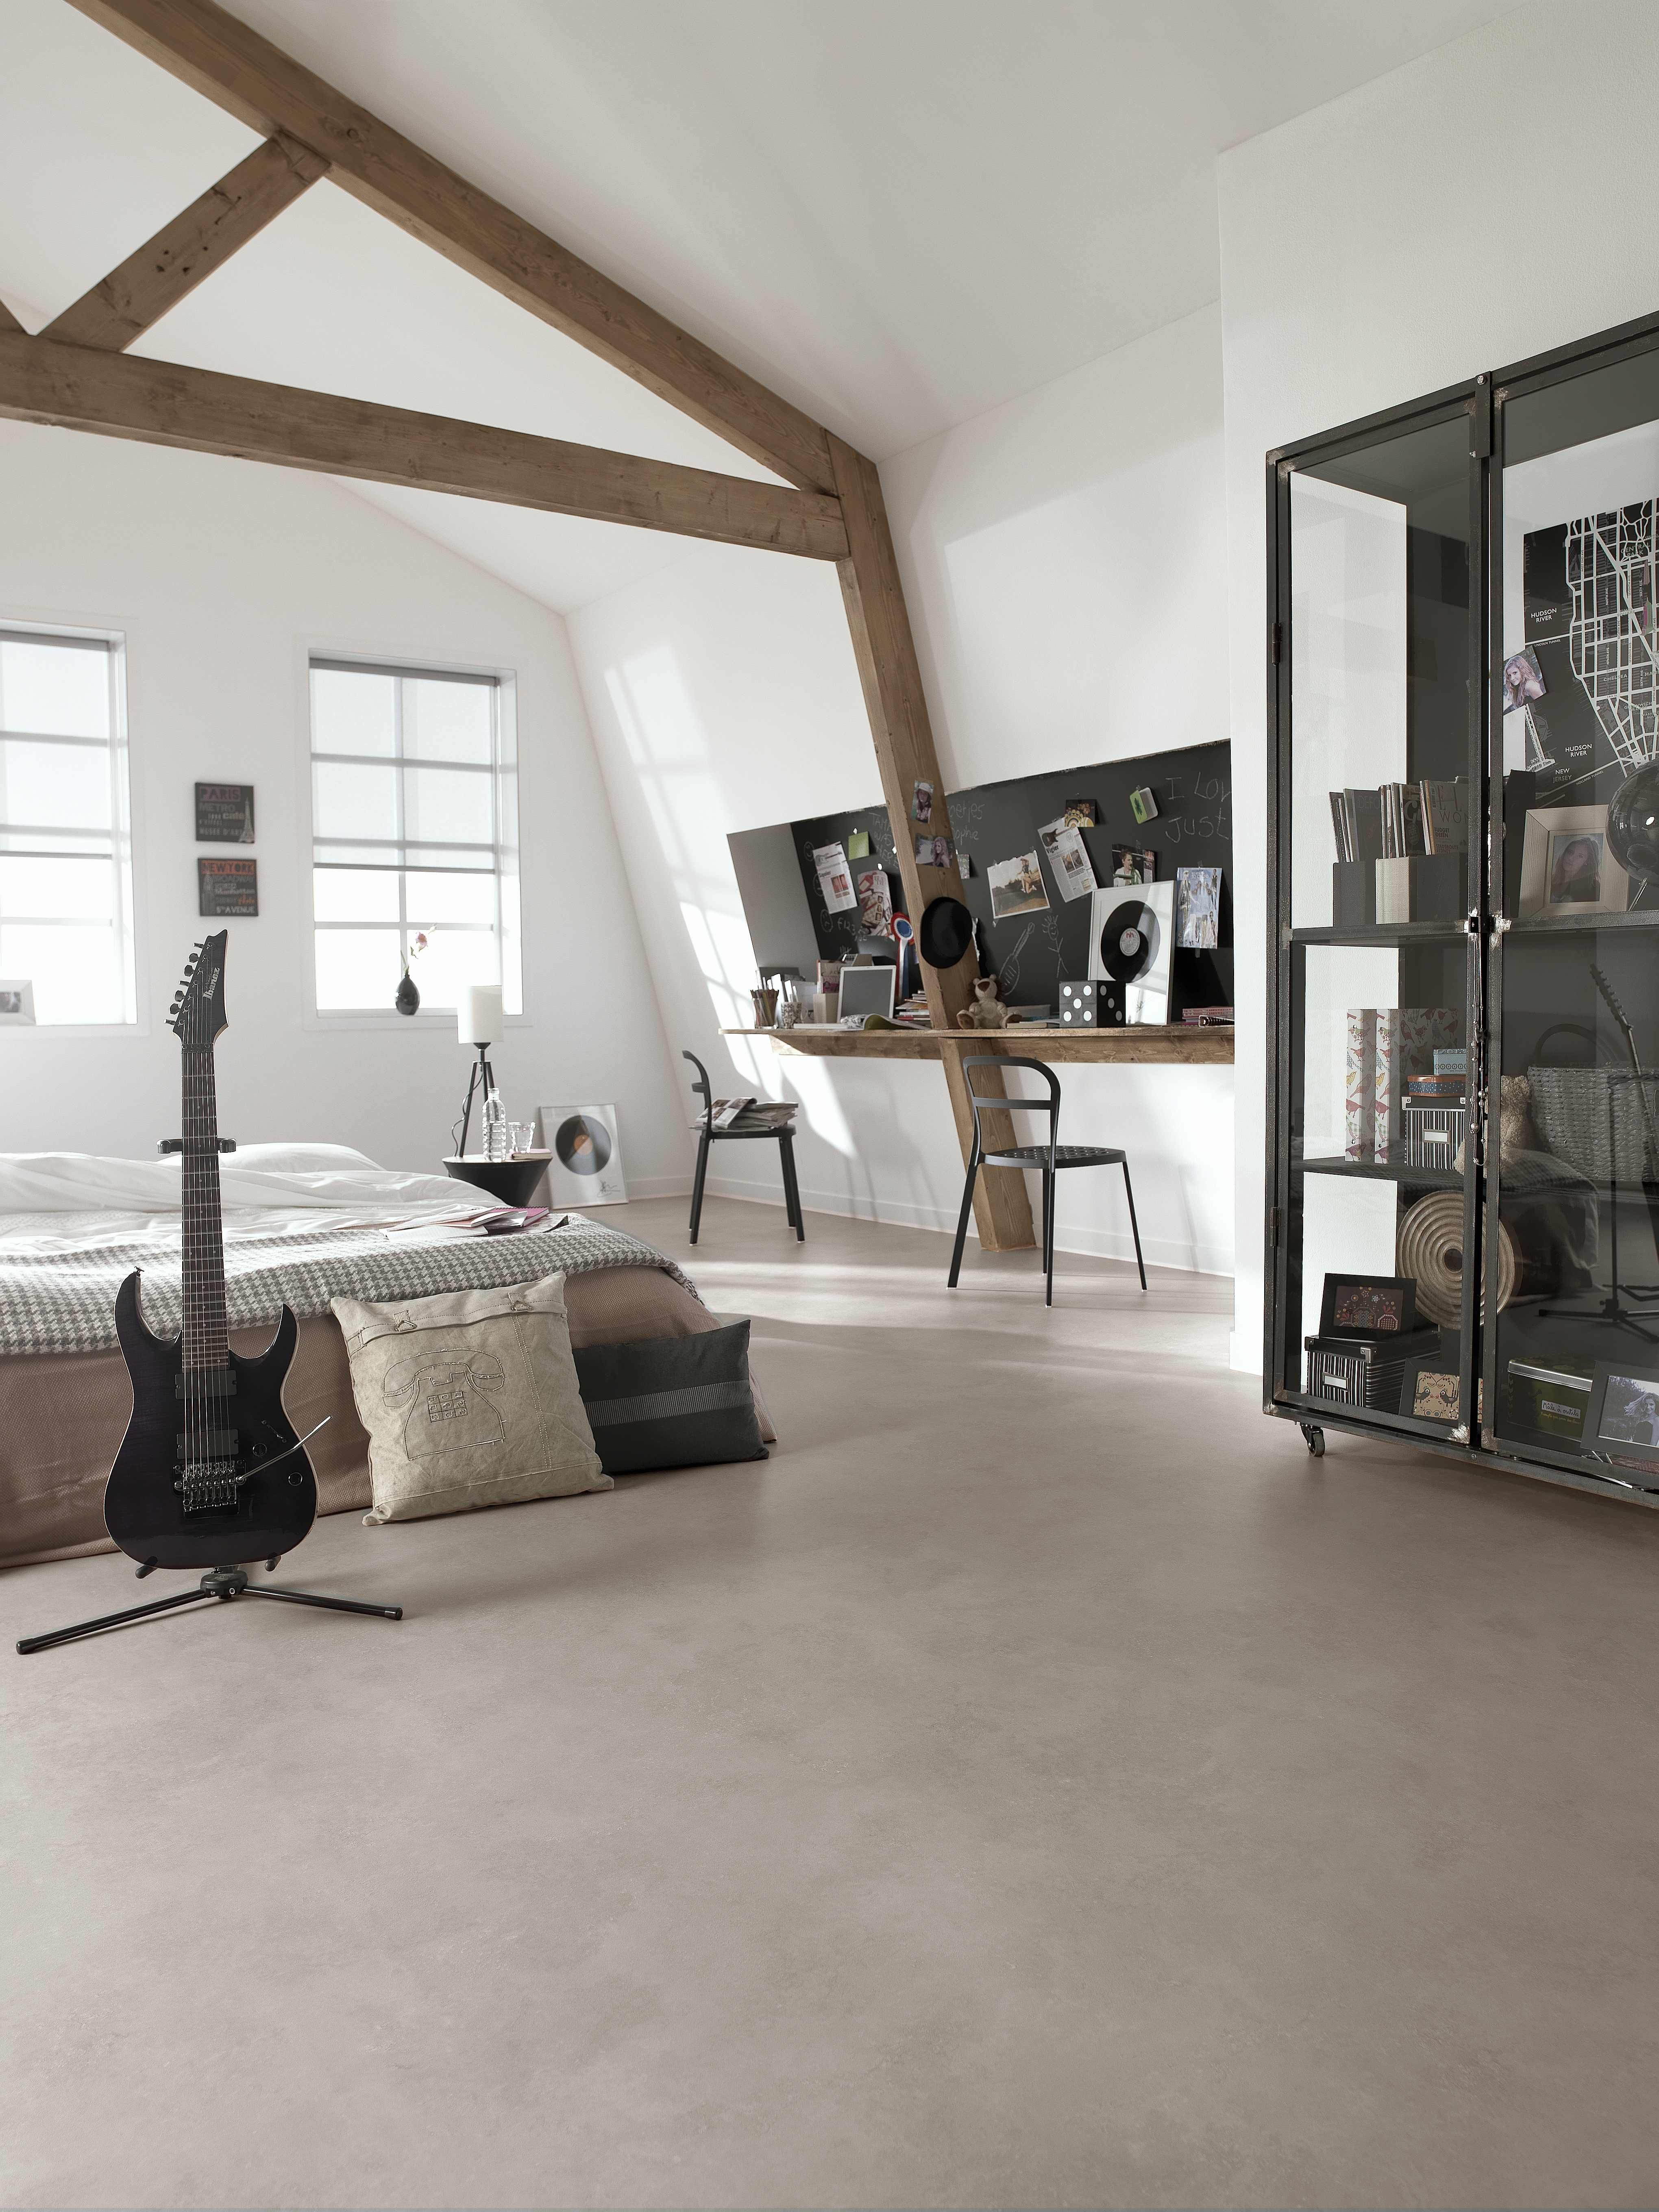 Forbo flooring, setdesign and styling Wieteke Faay